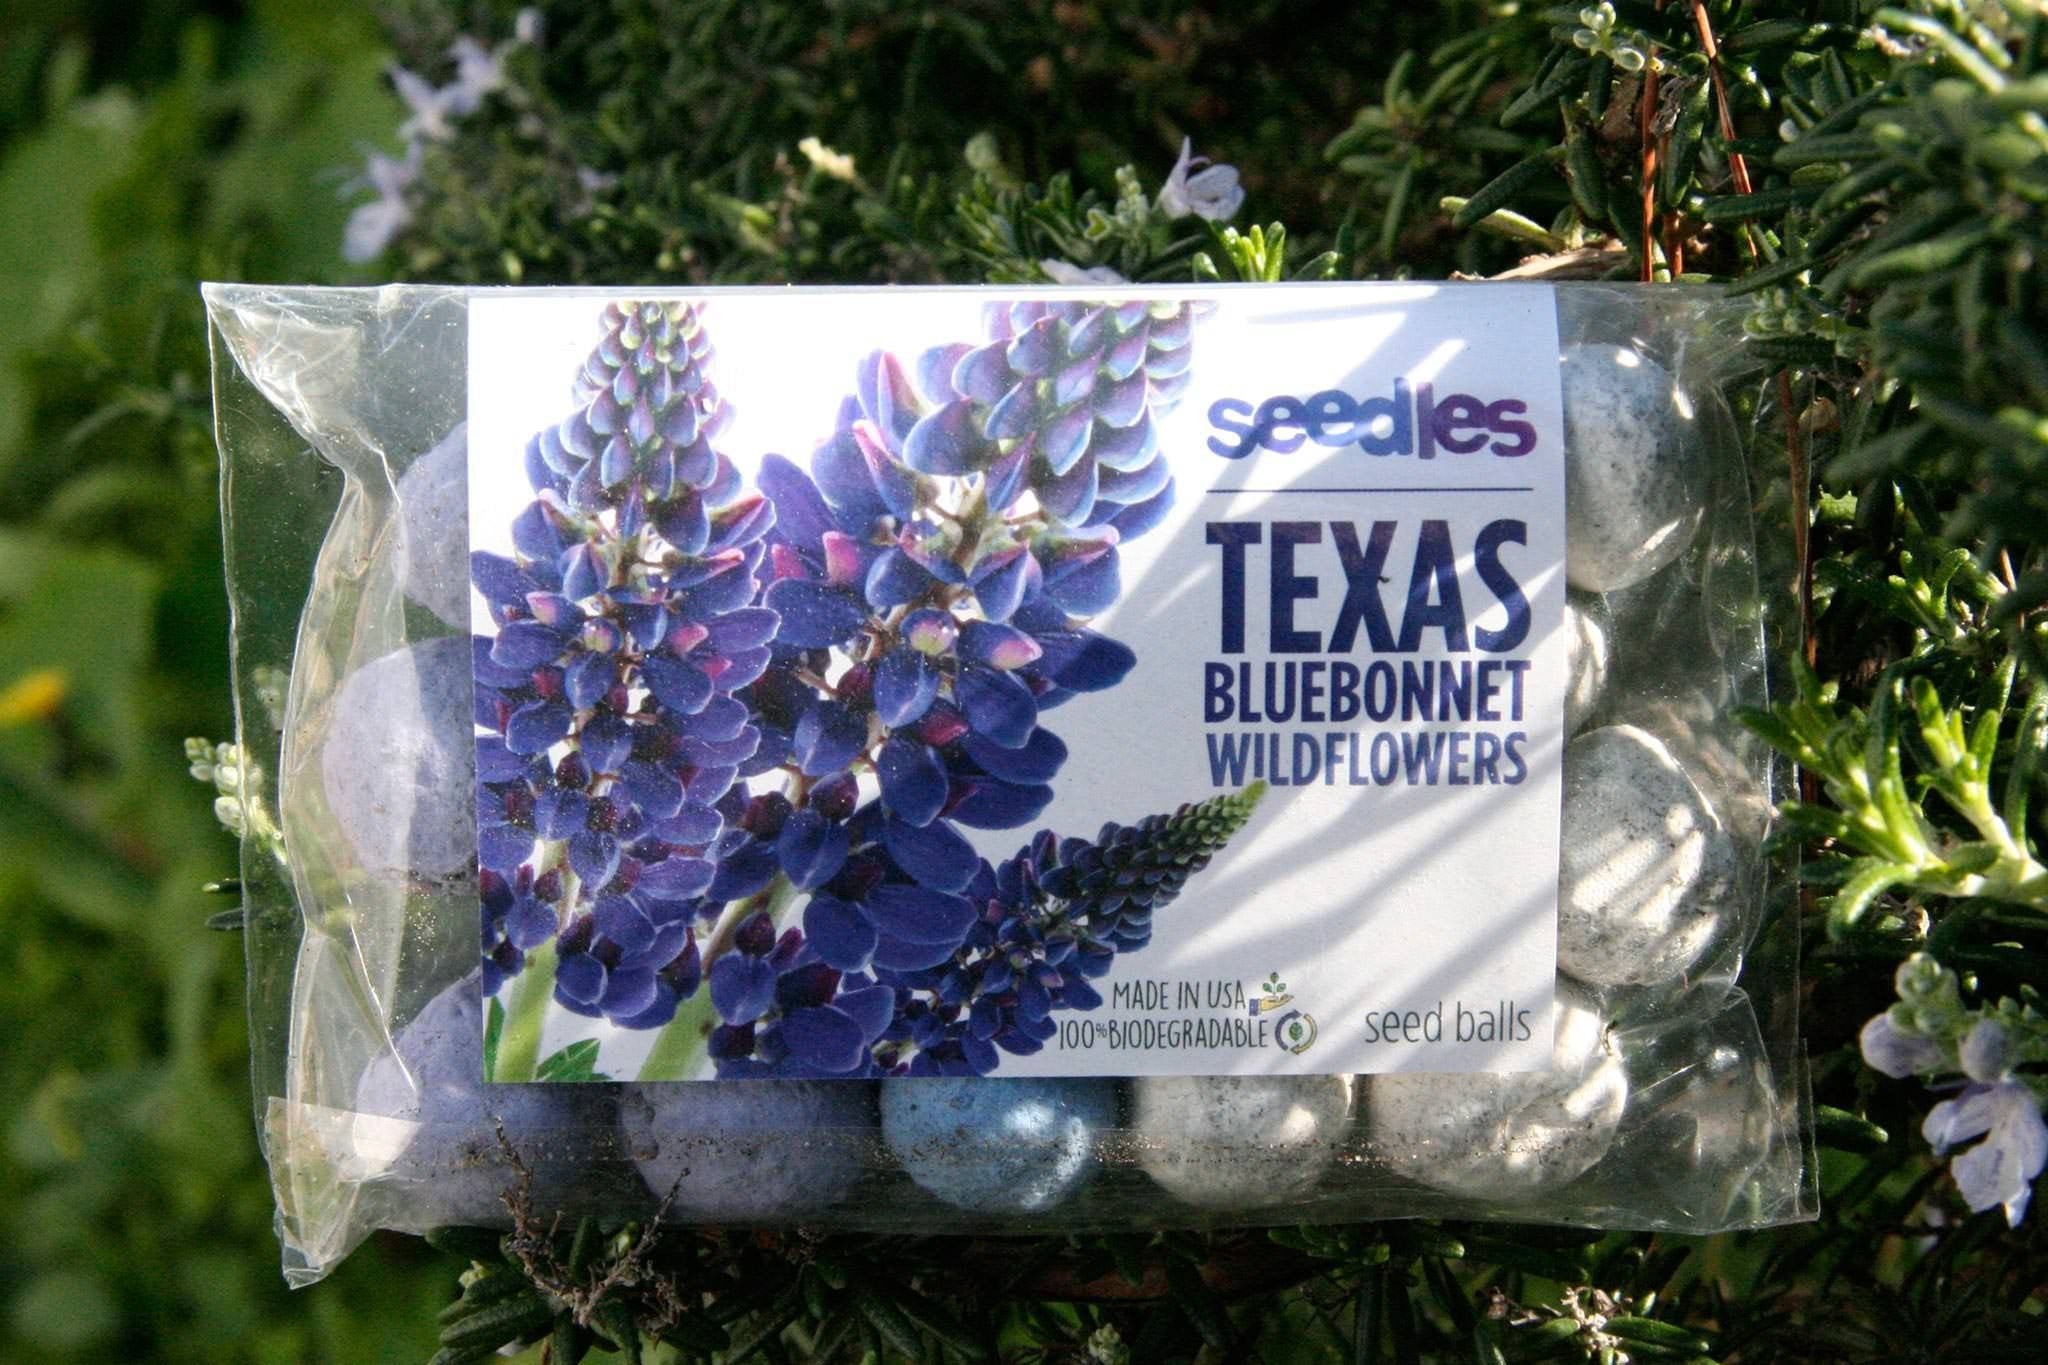 Seedles - Texas Bluebonnet Seedles